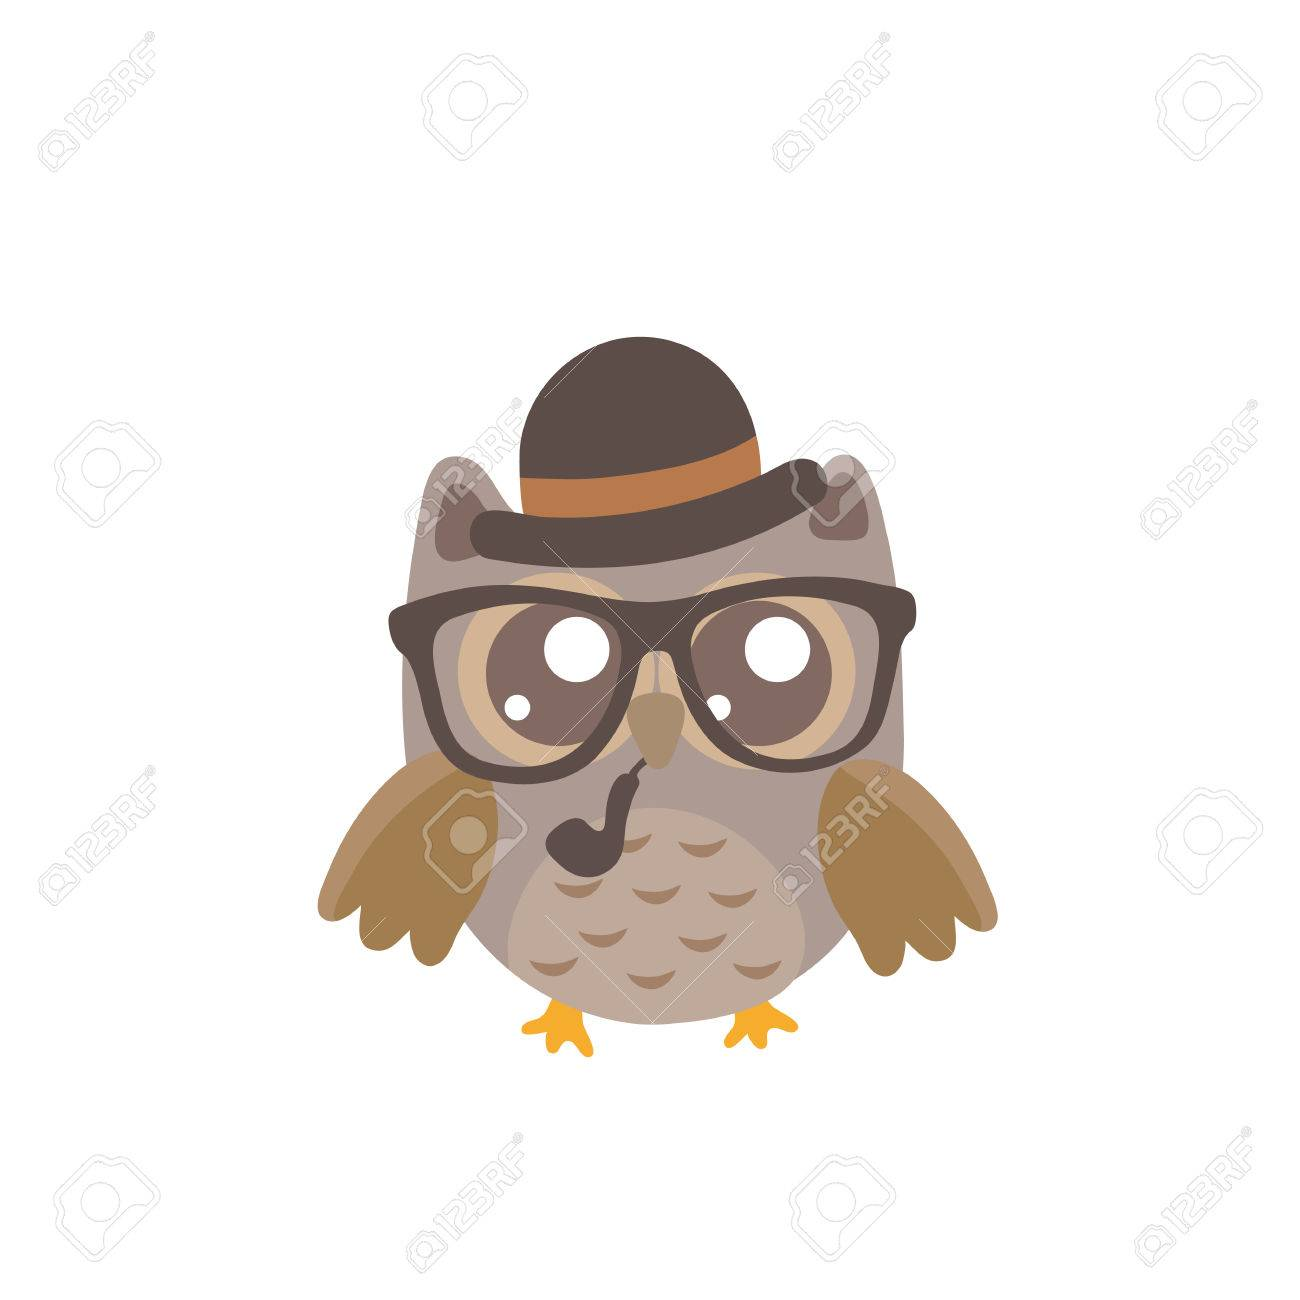 baby owl with glasses cartoon character icon isolated background rh 123rf com cute baby owl cartoon baby owl cartoon images